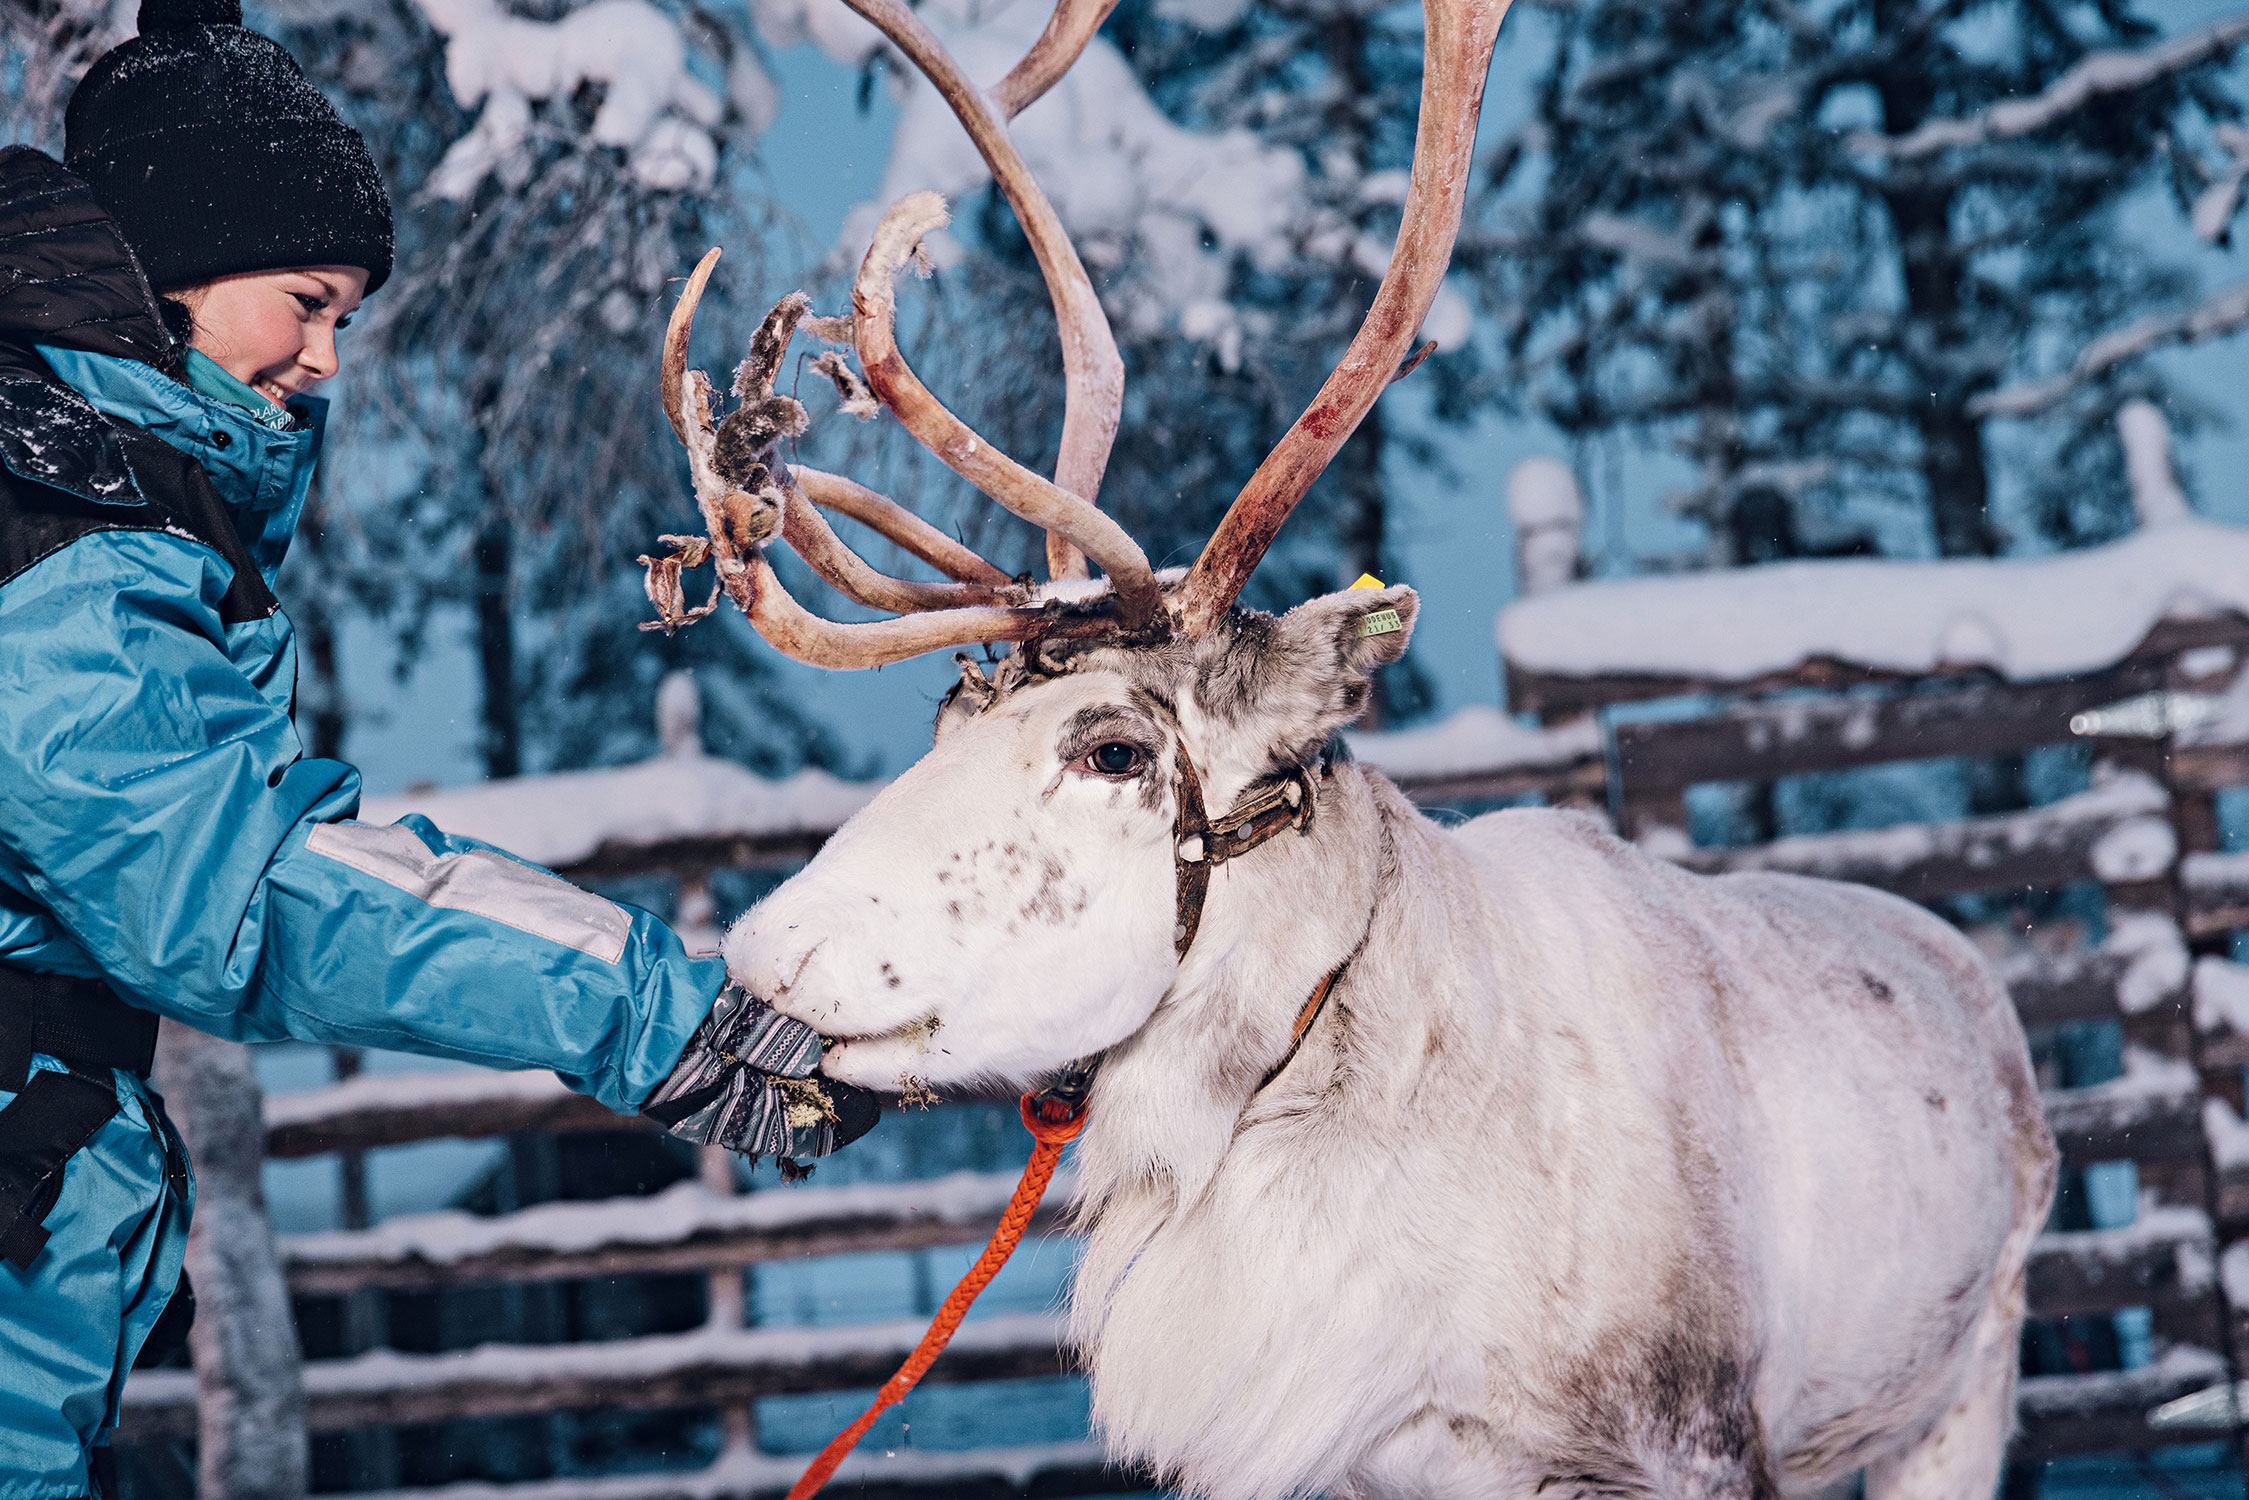 Reindeers can be seen throughout the year in nature surrounding the lodge.